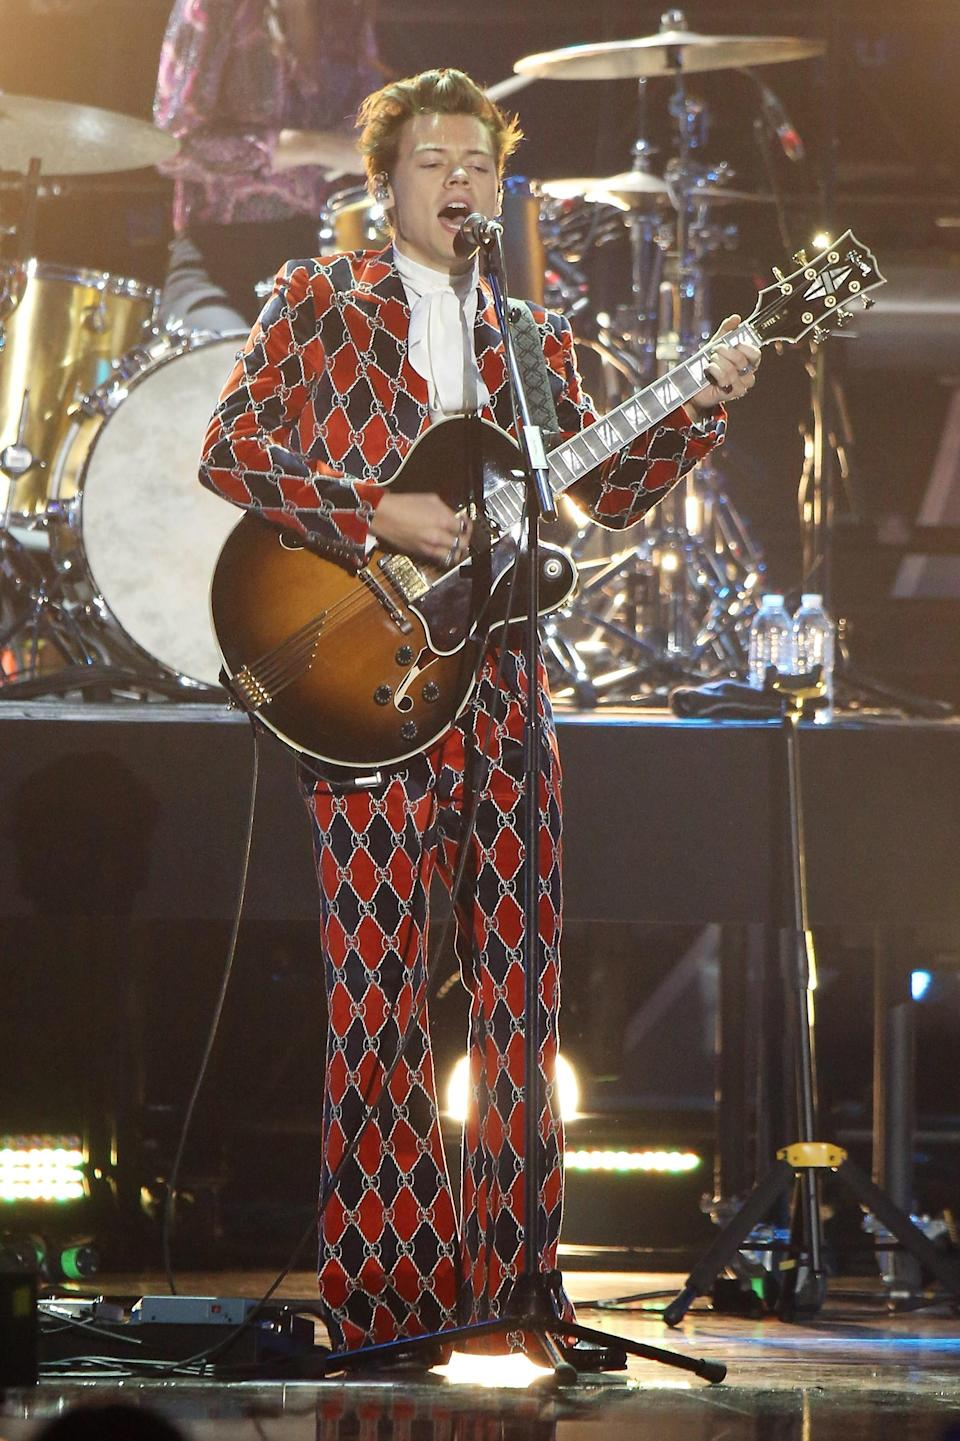 Printed suits? Check. Ruffled blouses? Double check. Harry Styles rules the red carpet in these campiest looks.